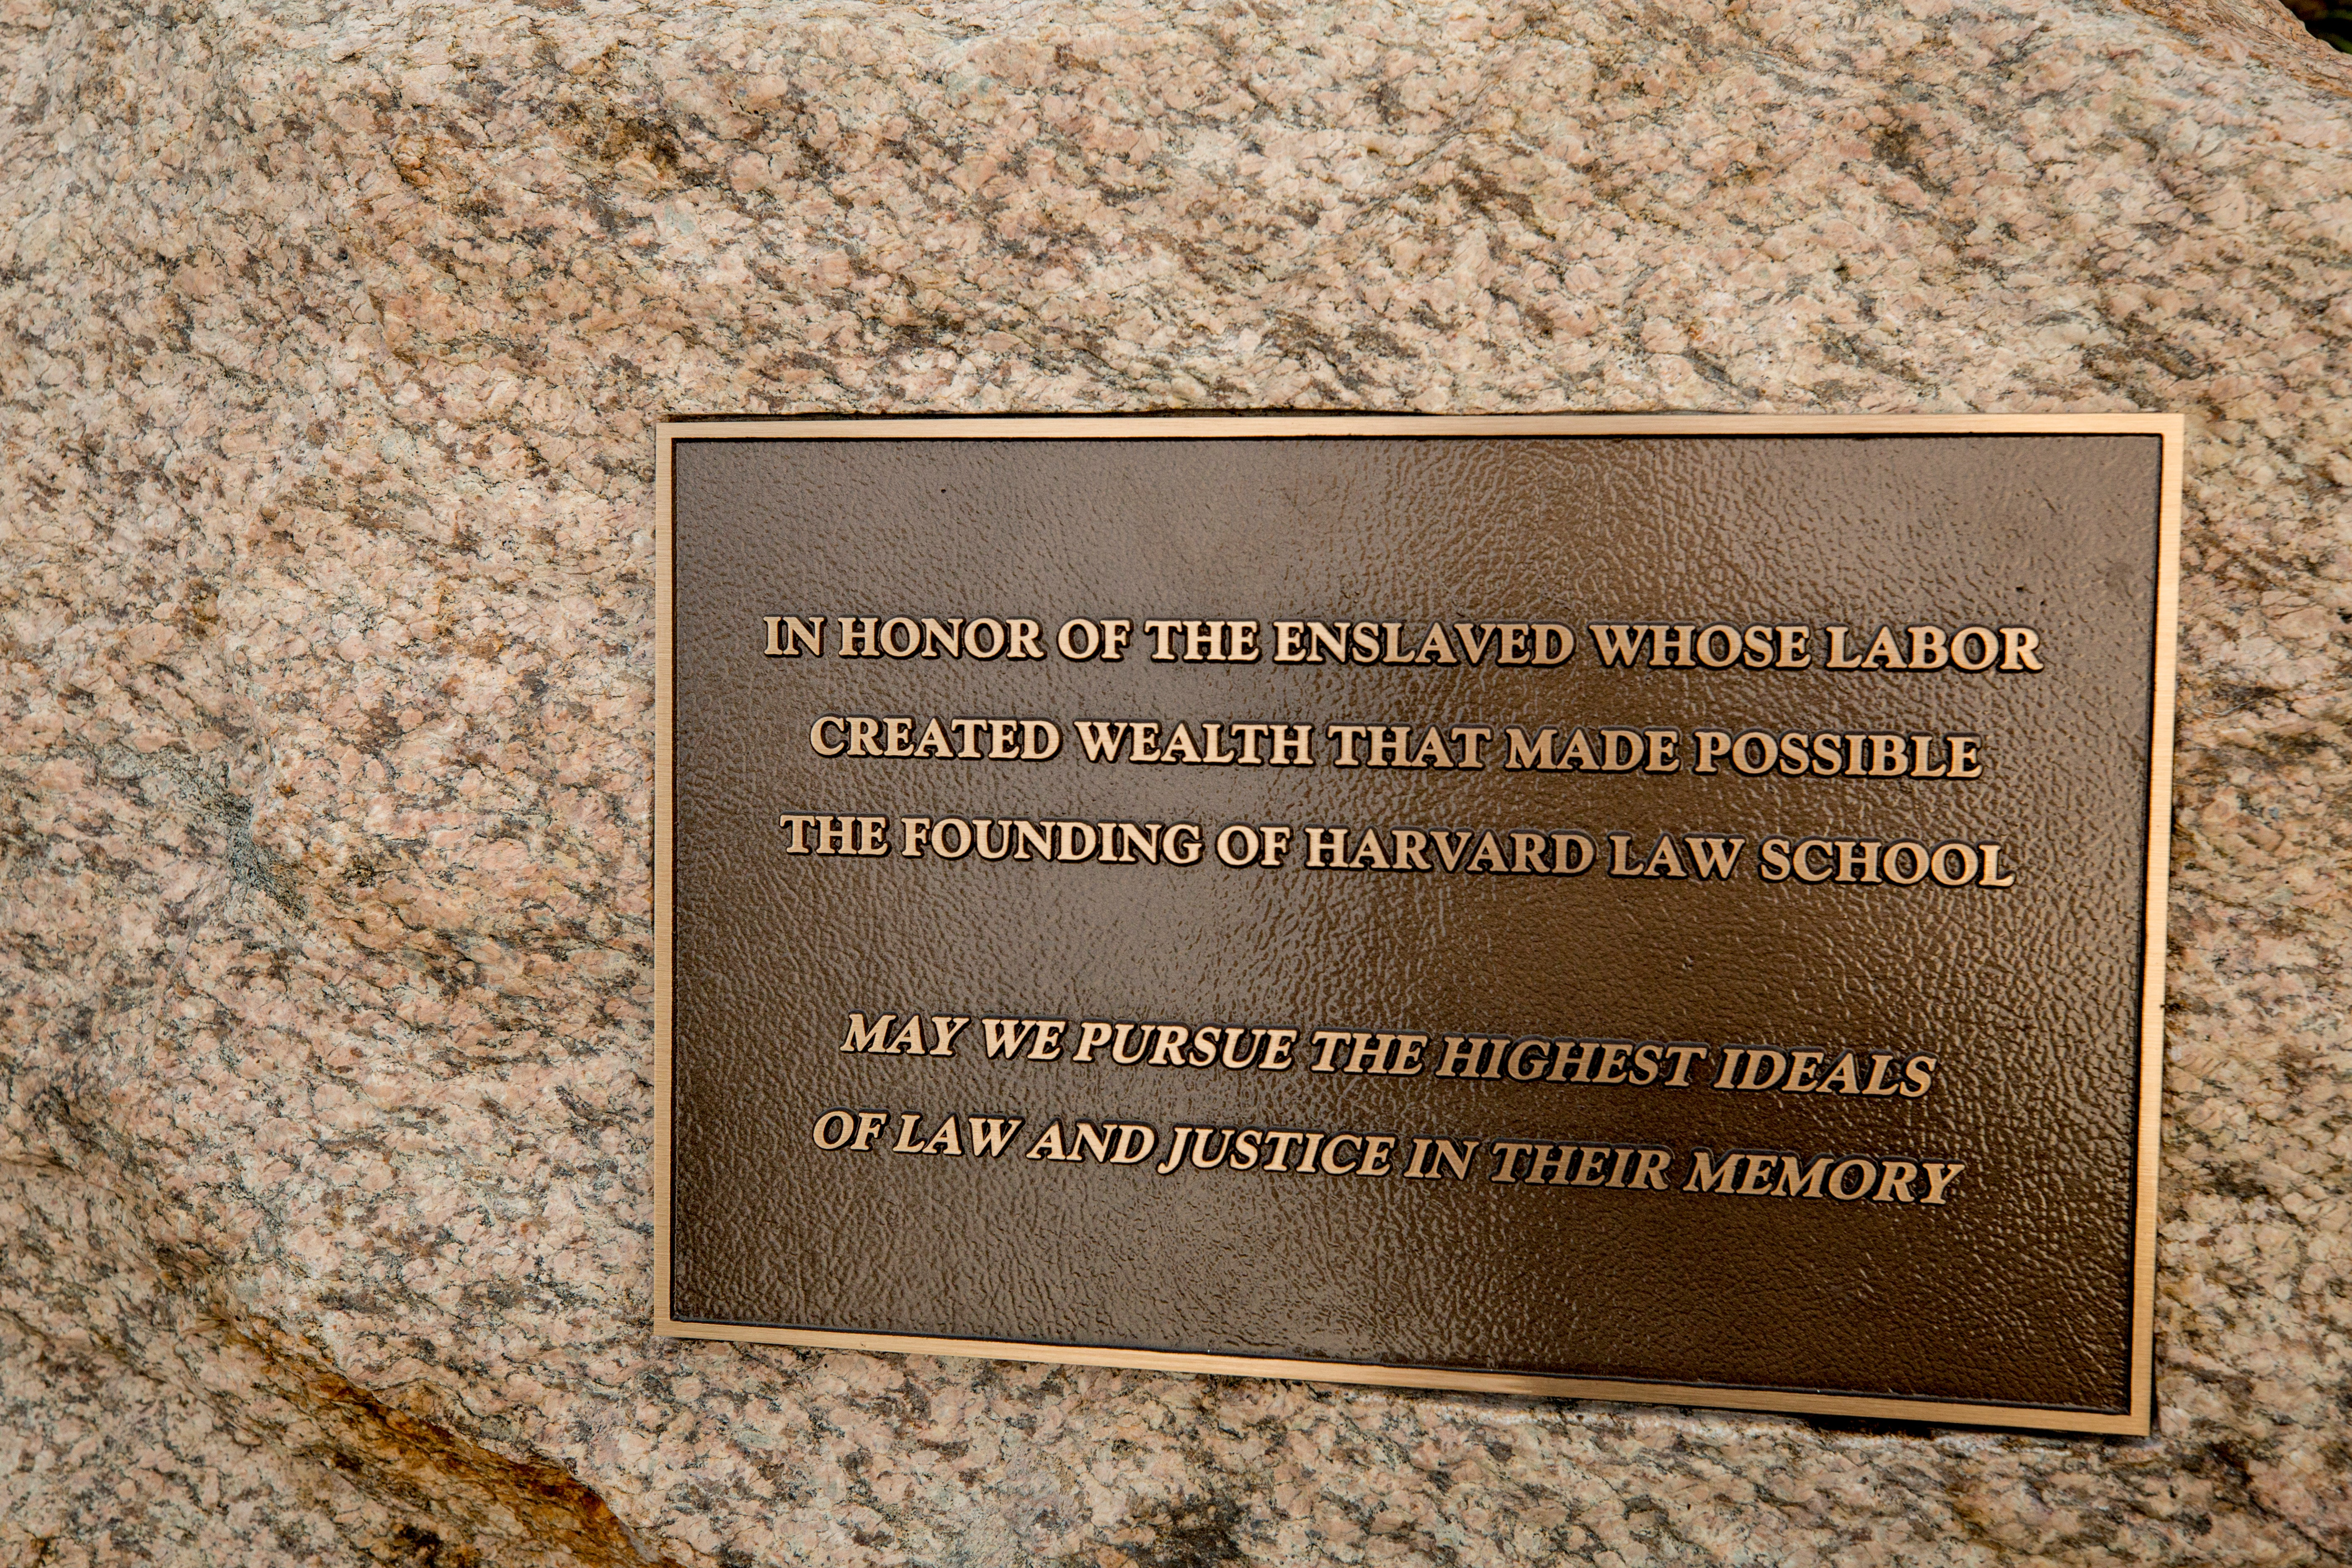 Plaque recognizing enslaved people integral to founding of Harvard Law School.